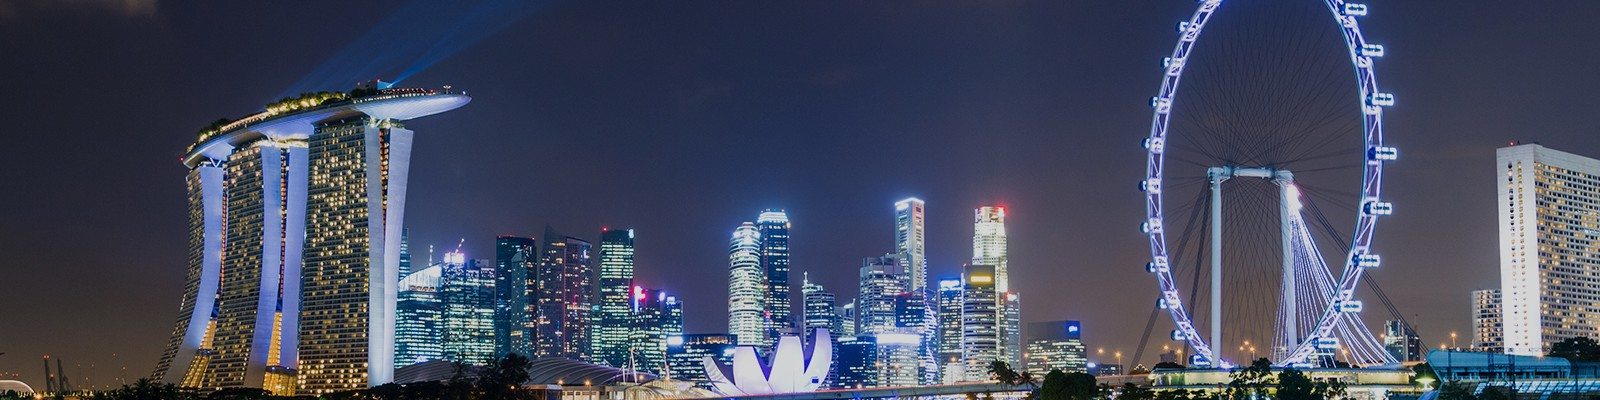 singapore-honeymoon-header